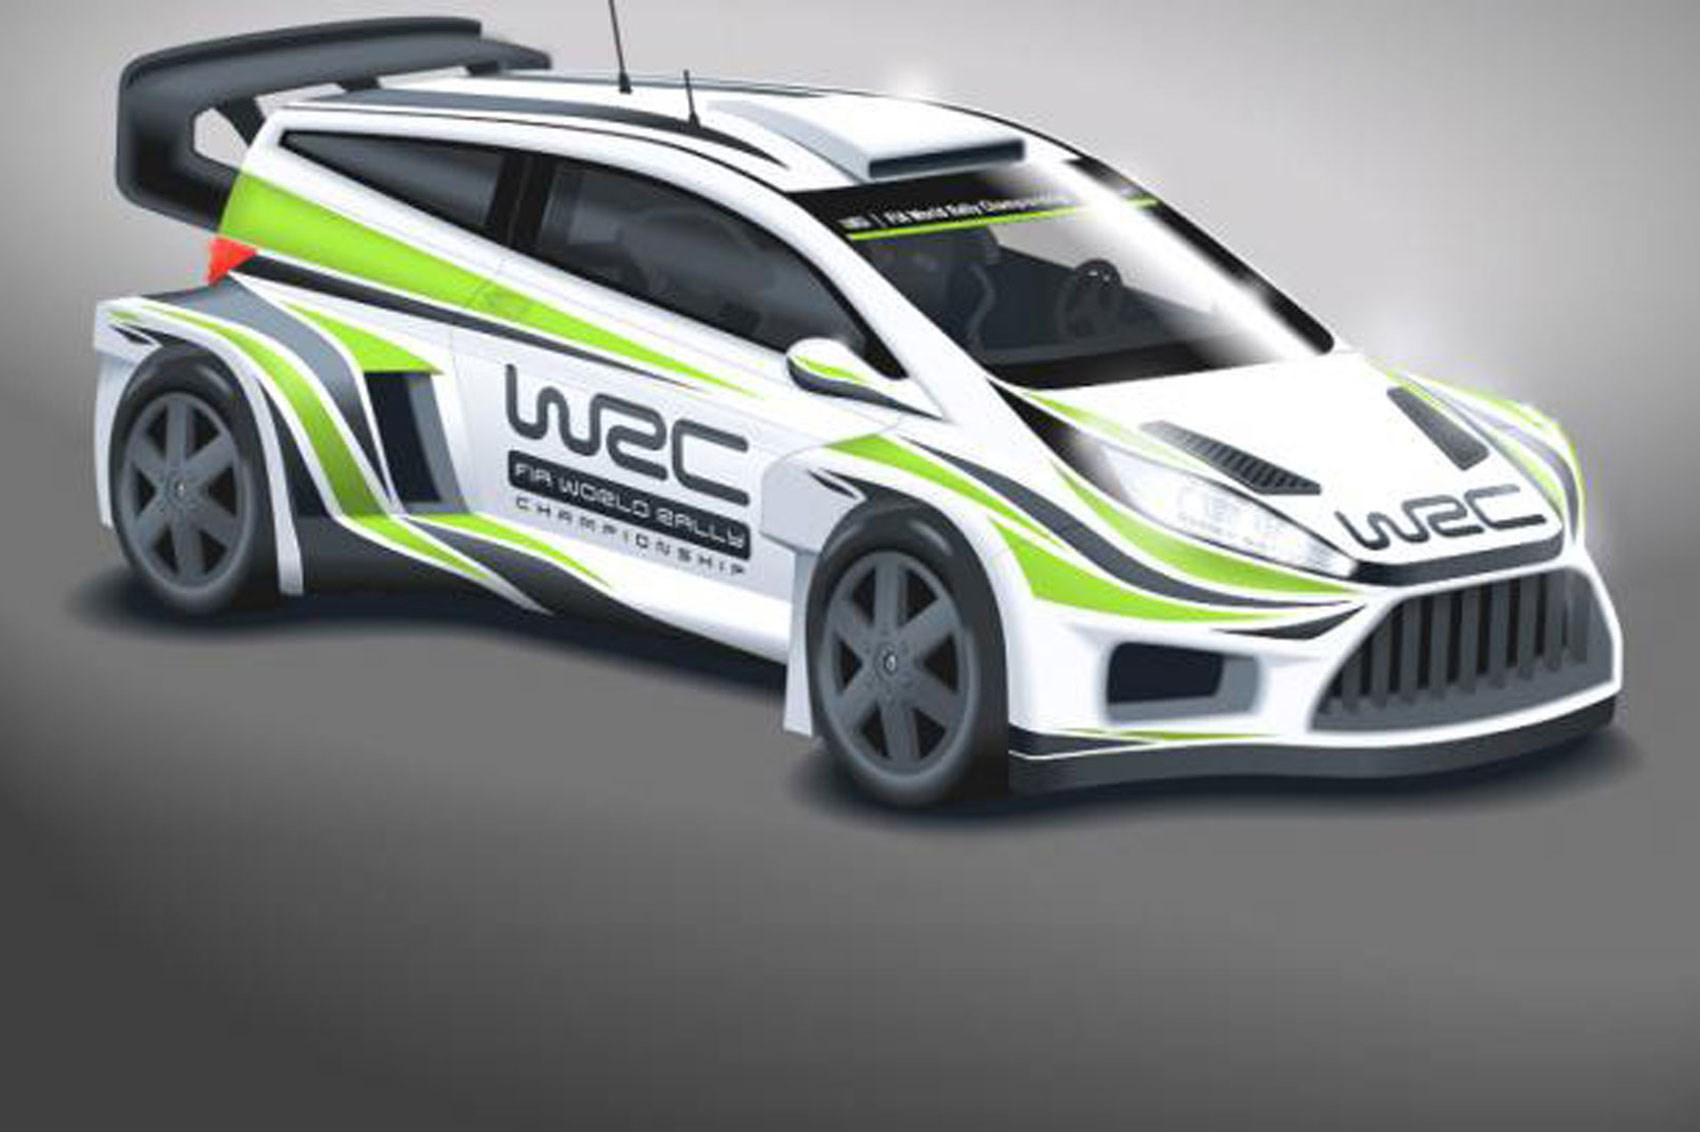 Ultrablogus  Winning Wild New Look For Wrc Cars In  By Car Magazine With Extraordinary Wrc Cars Will Get Wider Bodies Bigger Wings And More Power For  With Enchanting Ford Focus Interior Light Not Working Also Crossfire Interior In Addition  F Interior And Carrera Gt Interior As Well As Interior Car Lights Wont Turn Off Additionally  Ford Explorer Interior From Carmagazinecouk With Ultrablogus  Extraordinary Wild New Look For Wrc Cars In  By Car Magazine With Enchanting Wrc Cars Will Get Wider Bodies Bigger Wings And More Power For  And Winning Ford Focus Interior Light Not Working Also Crossfire Interior In Addition  F Interior From Carmagazinecouk